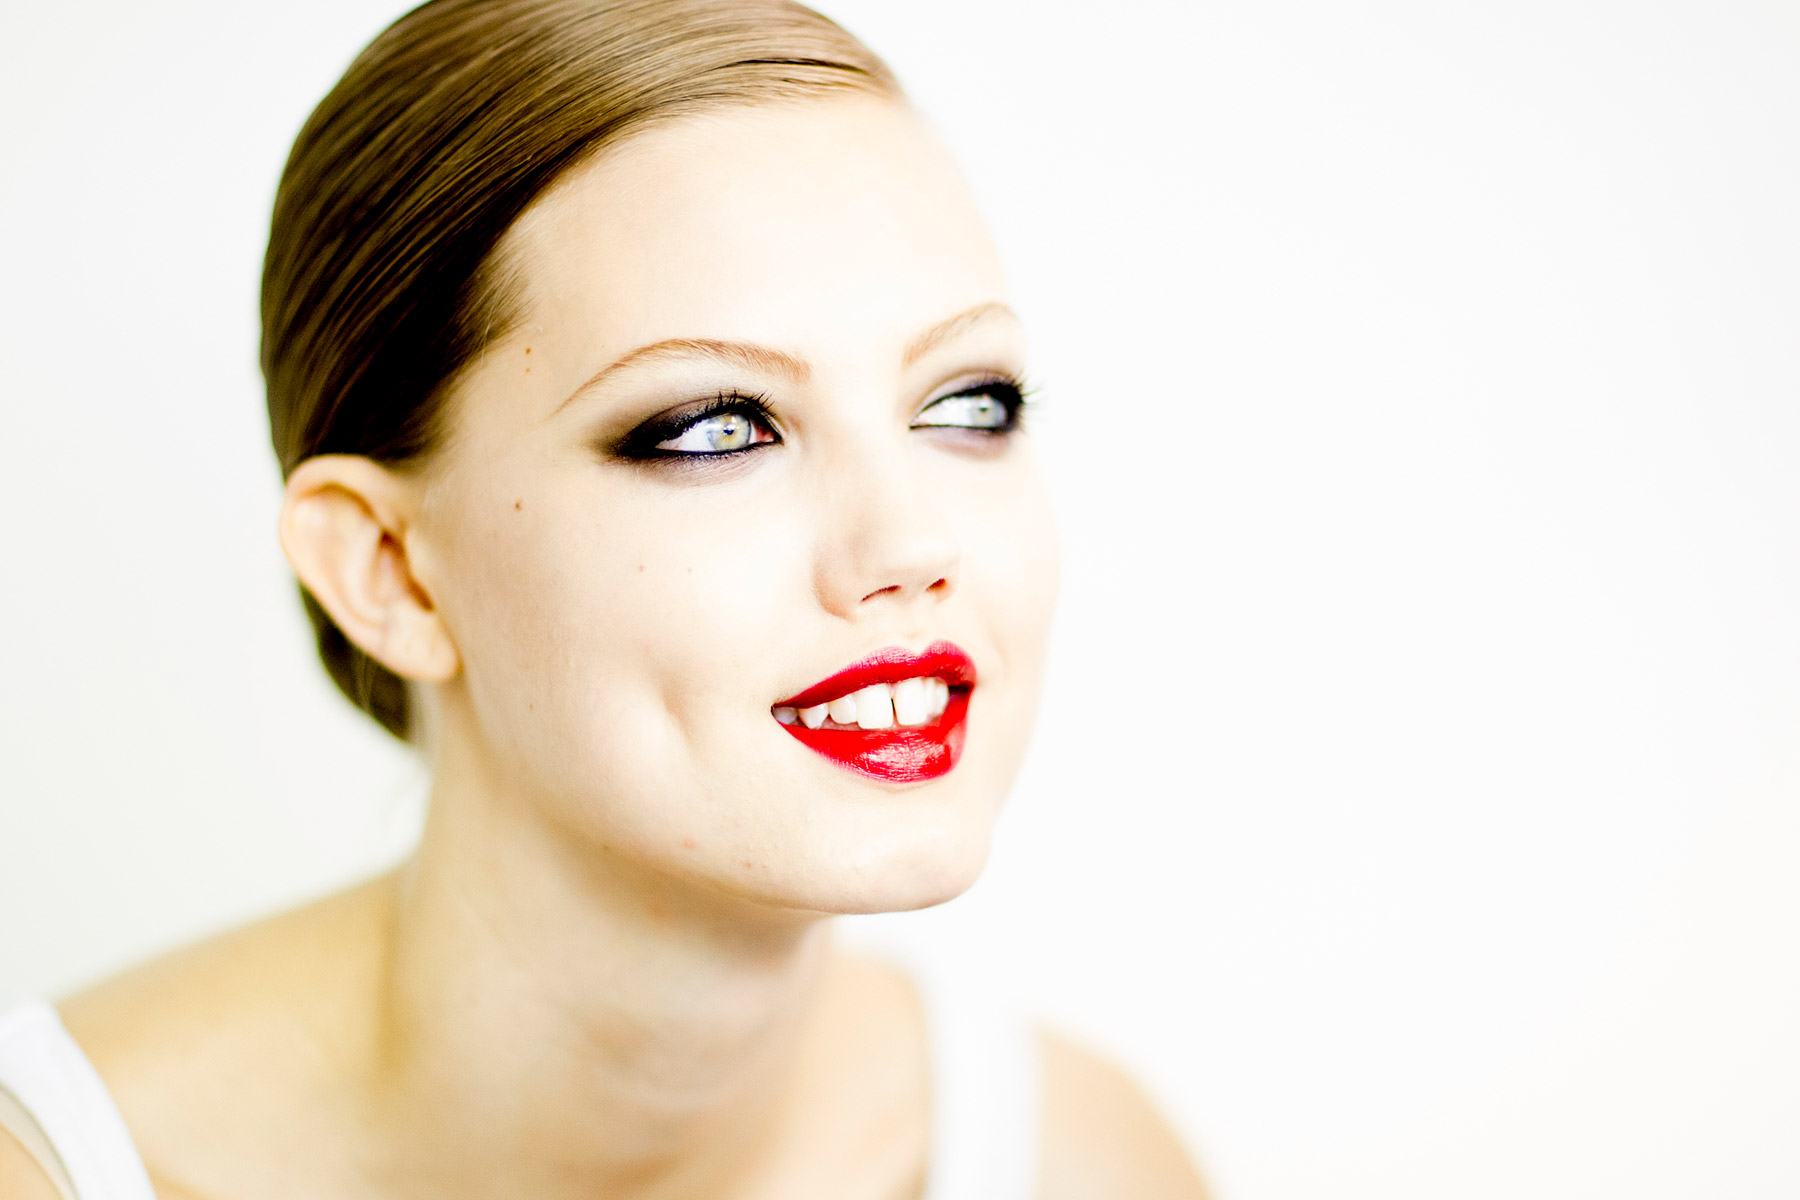 Wedding-makeup-inspiration-red-lips-dramatic-eyes.original